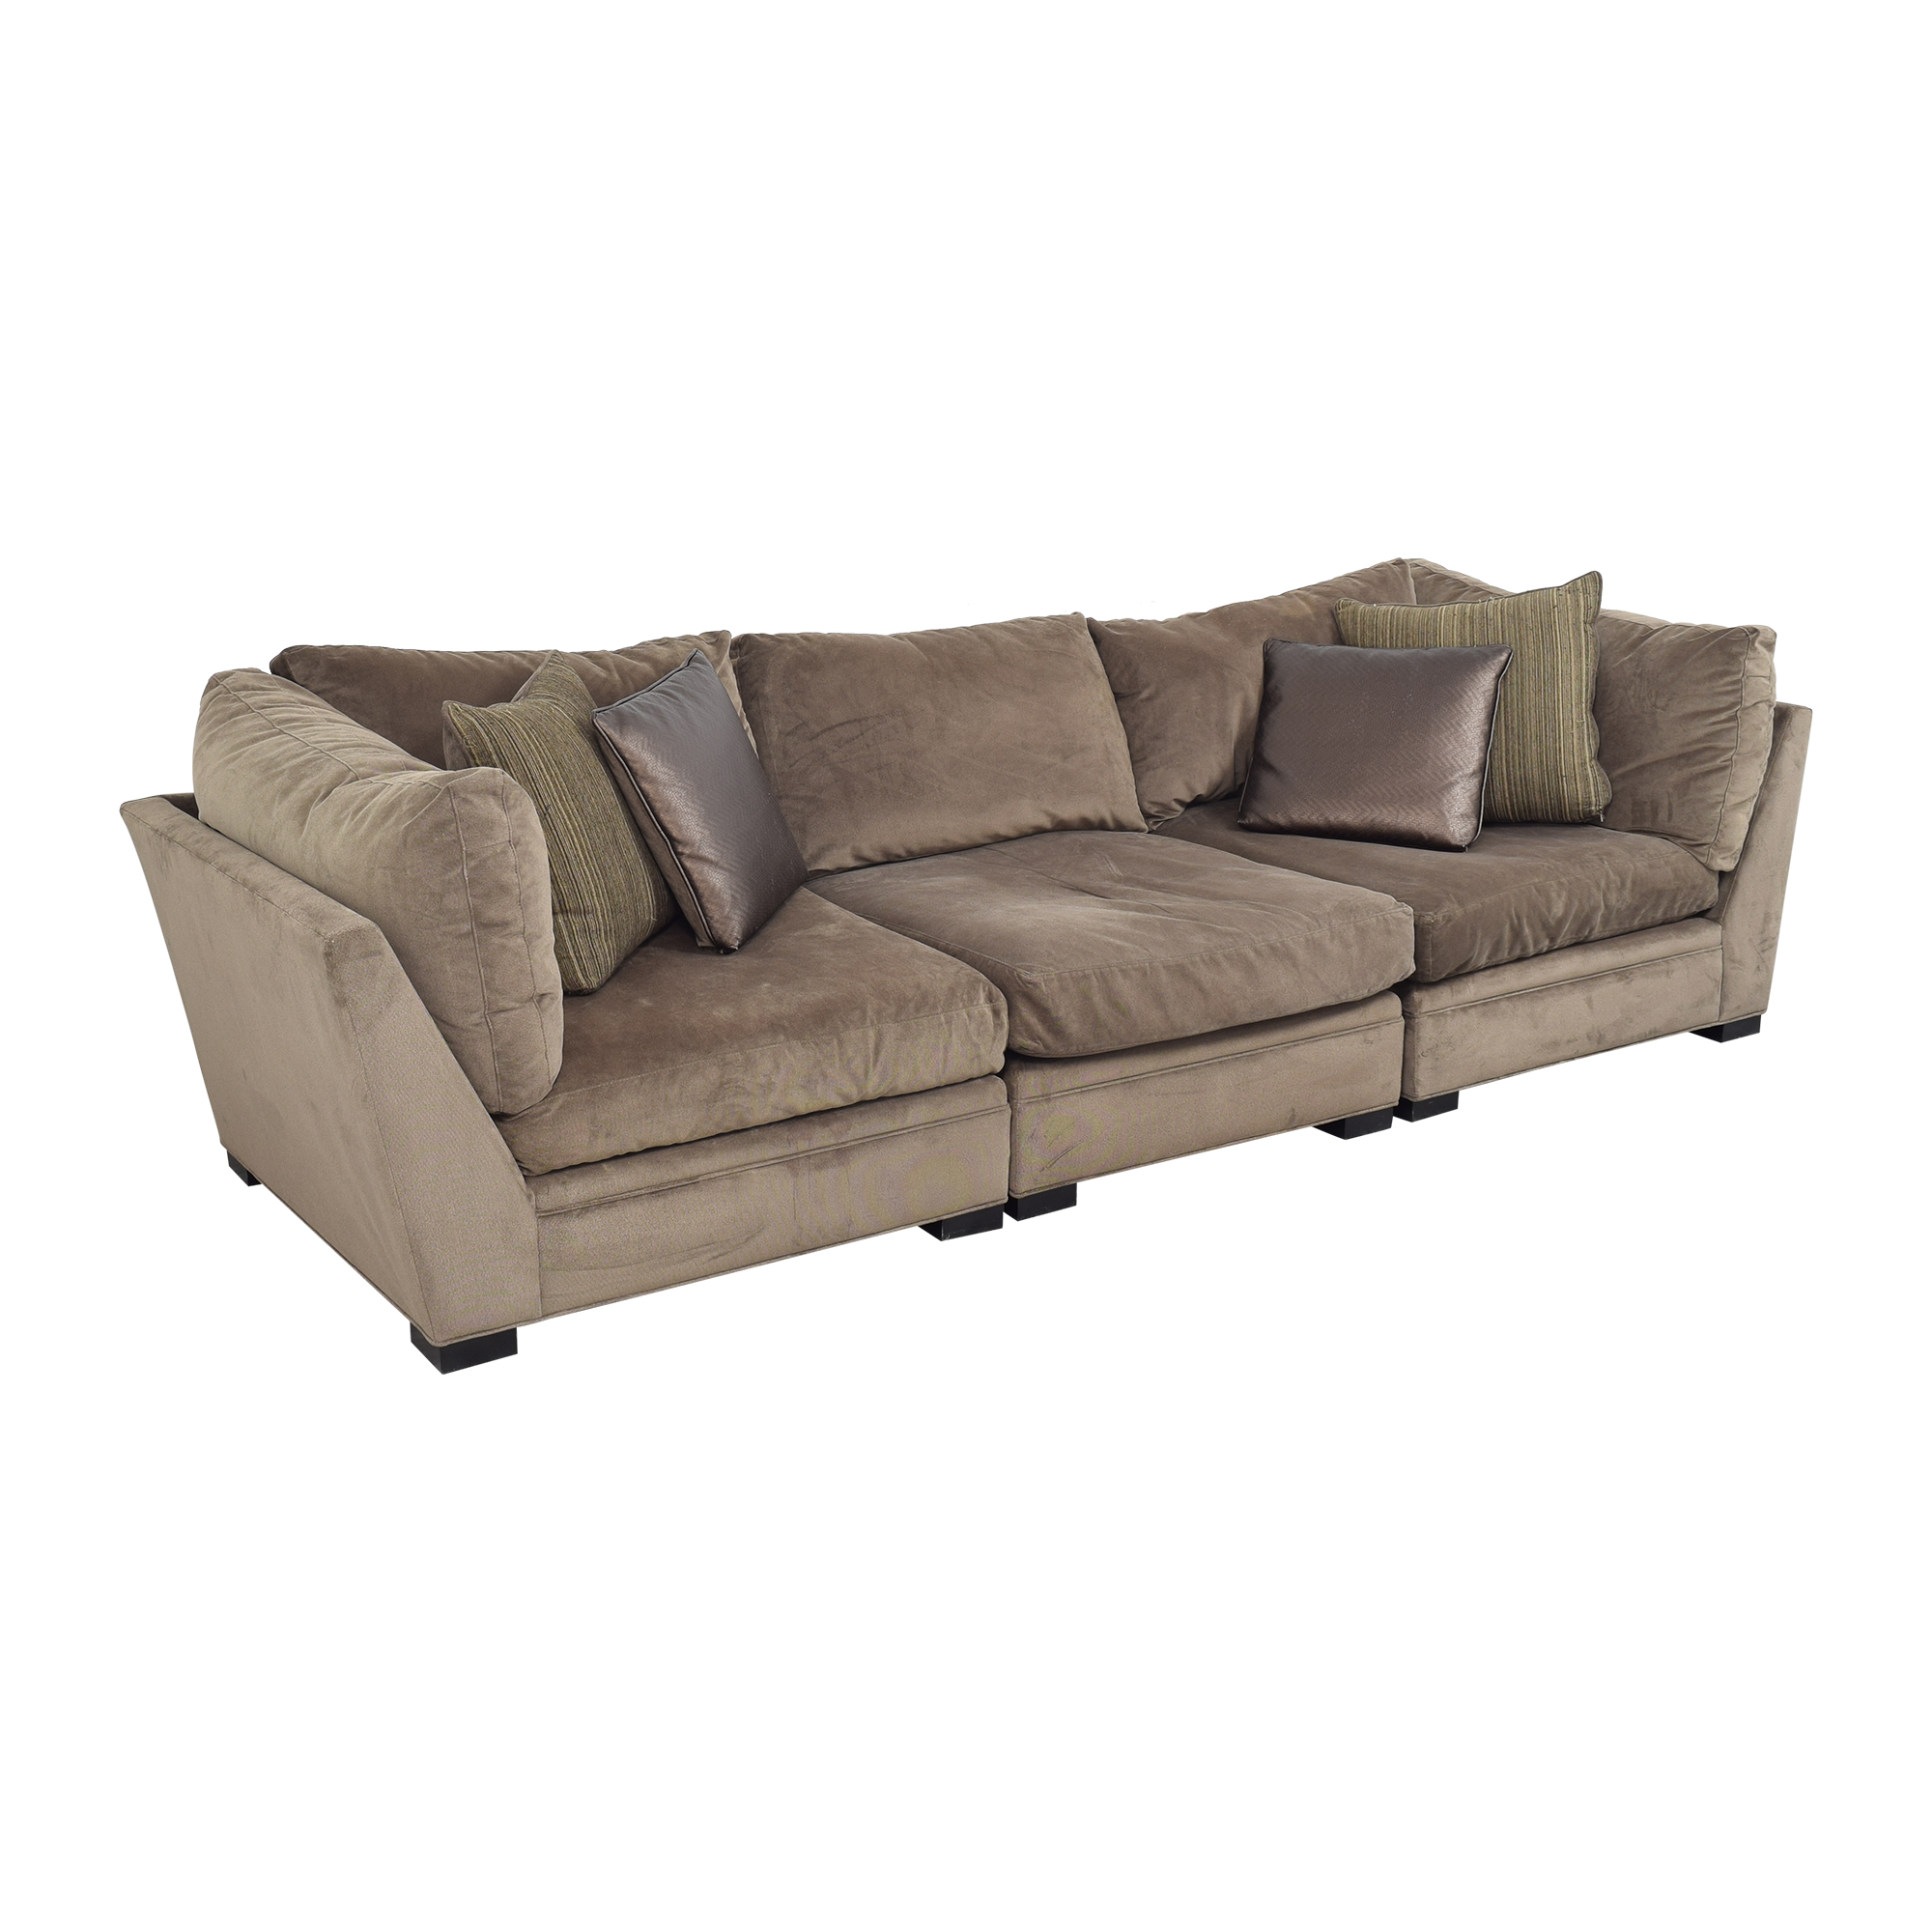 Raymour & Flanigan Raymour & Flanigan Sectional Sofa by Cindy Crawford Home second hand